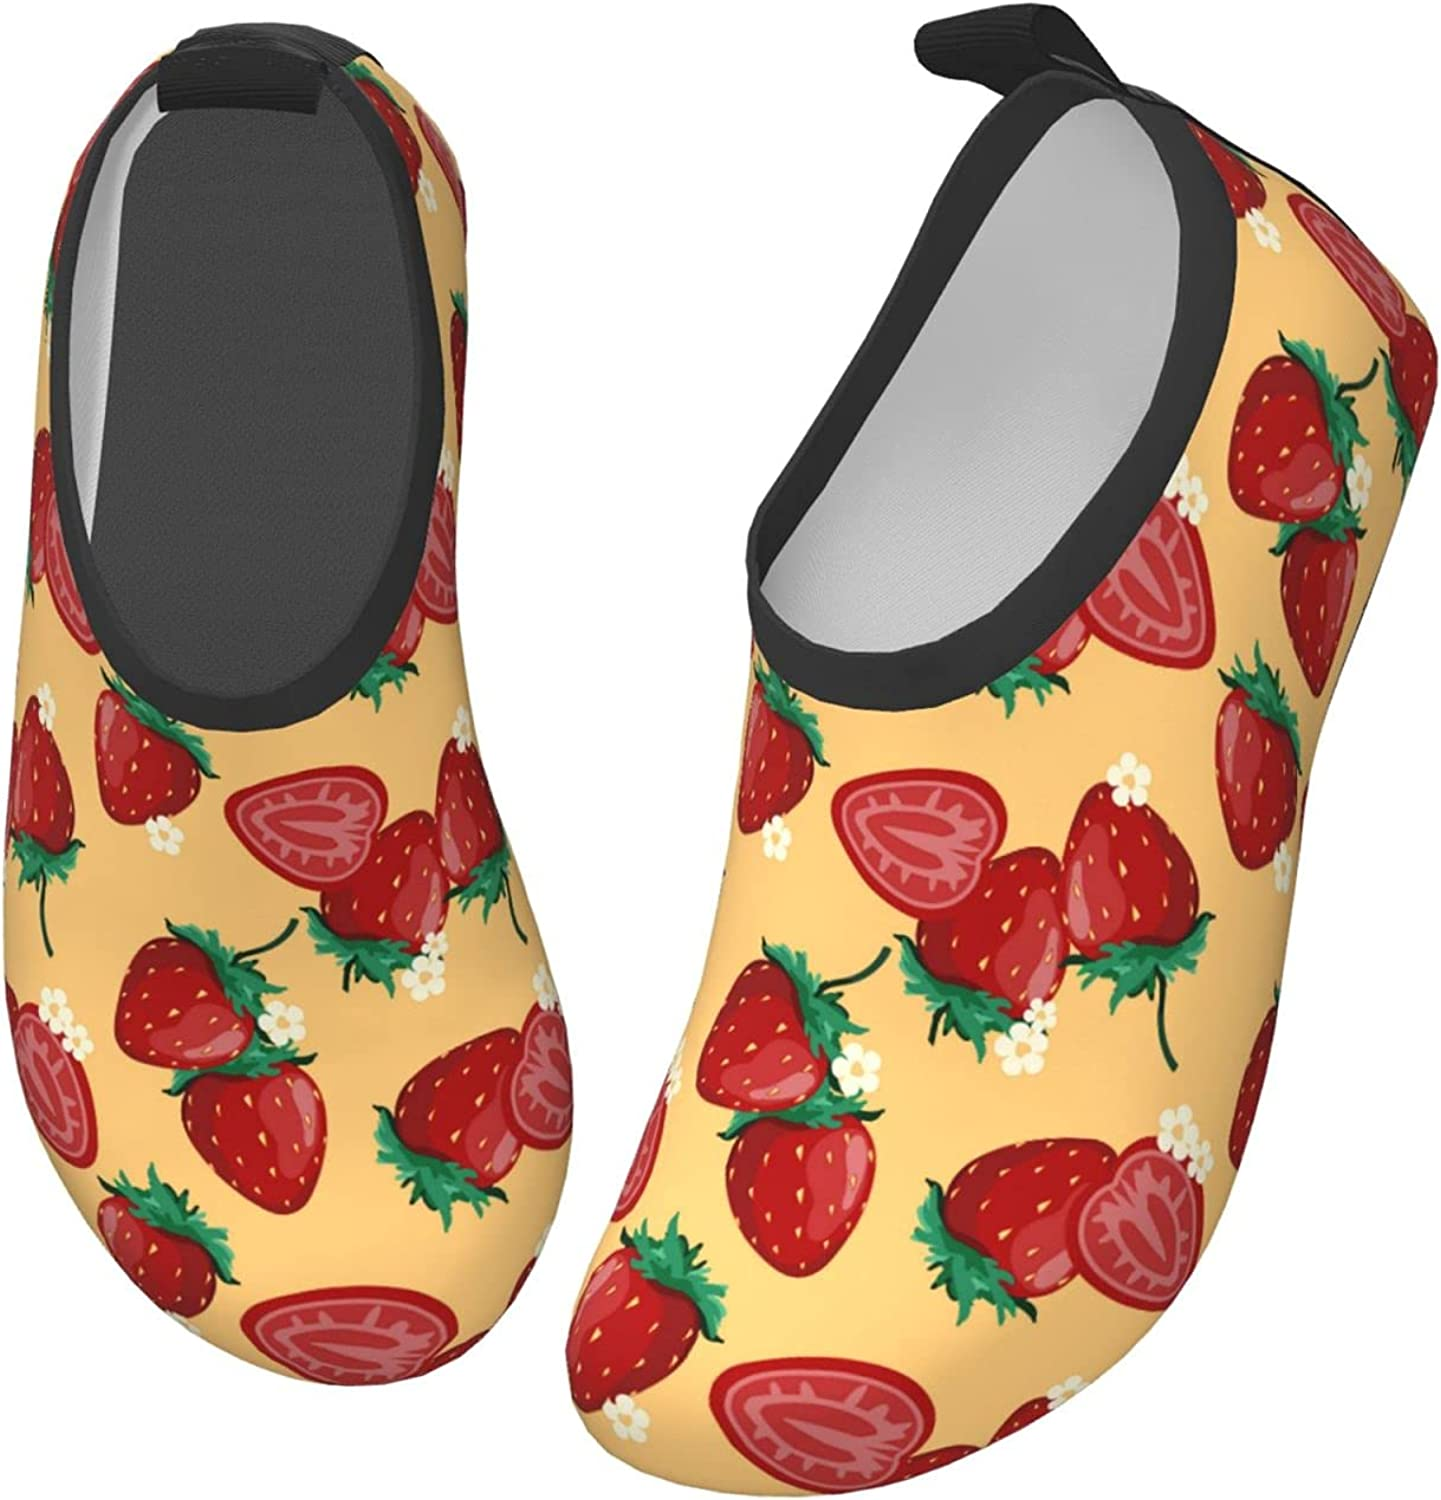 Jedenkuku Cute Strawberry Fruit Yellow Children's Water Shoes Feel Barefoot for Swimming Beach Boating Surfing Yoga